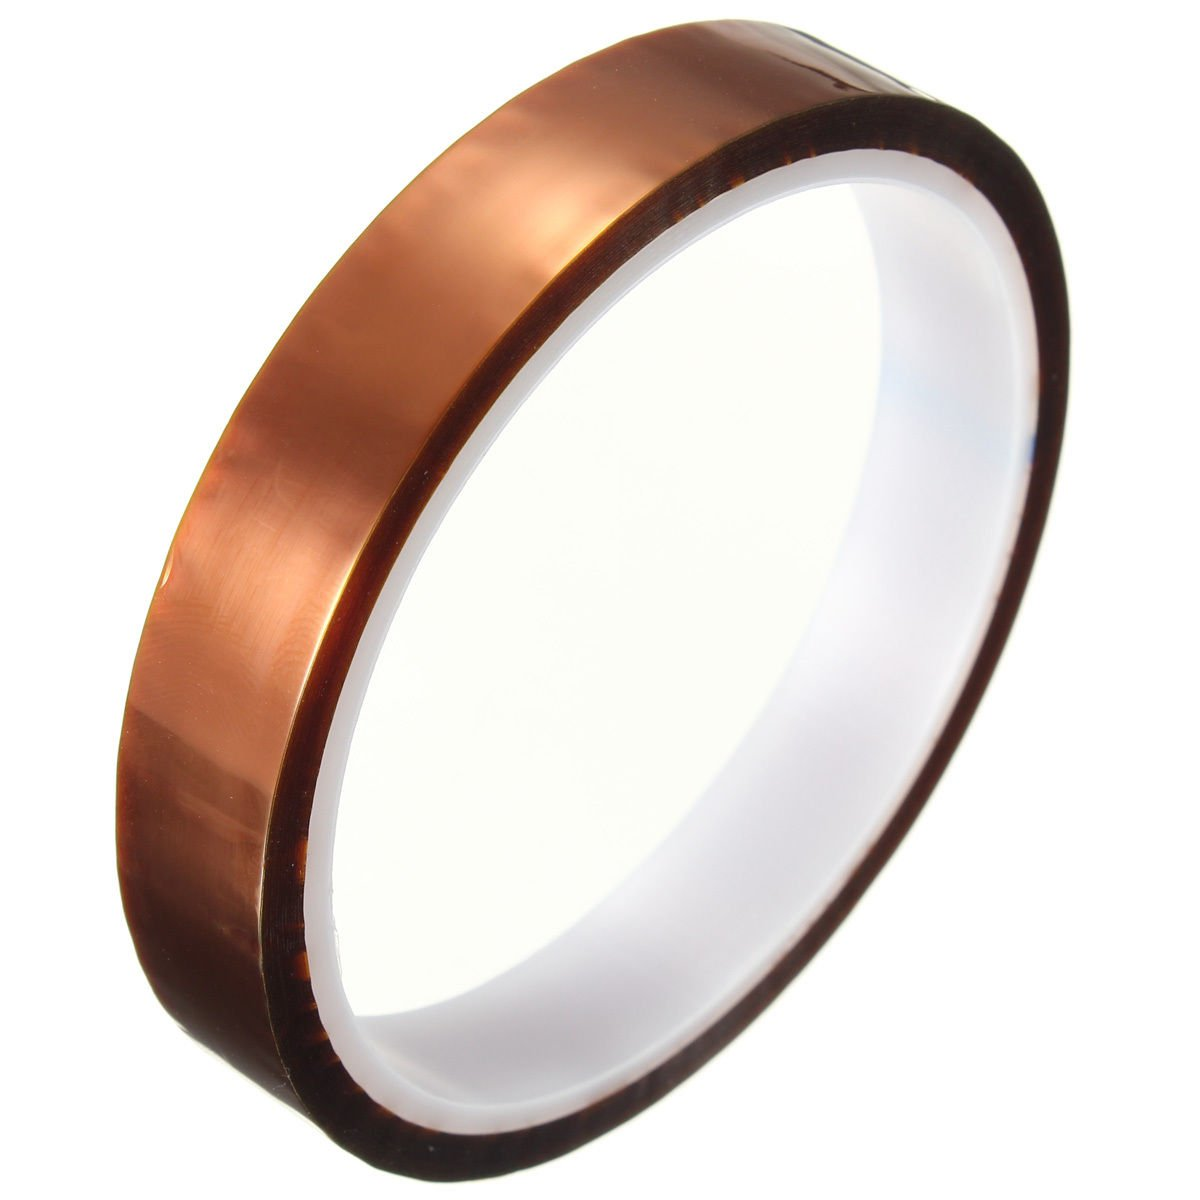 15mm x 30m Gold Kapton Tape High Temperature Heat Resistant Polyimide 260-300� db